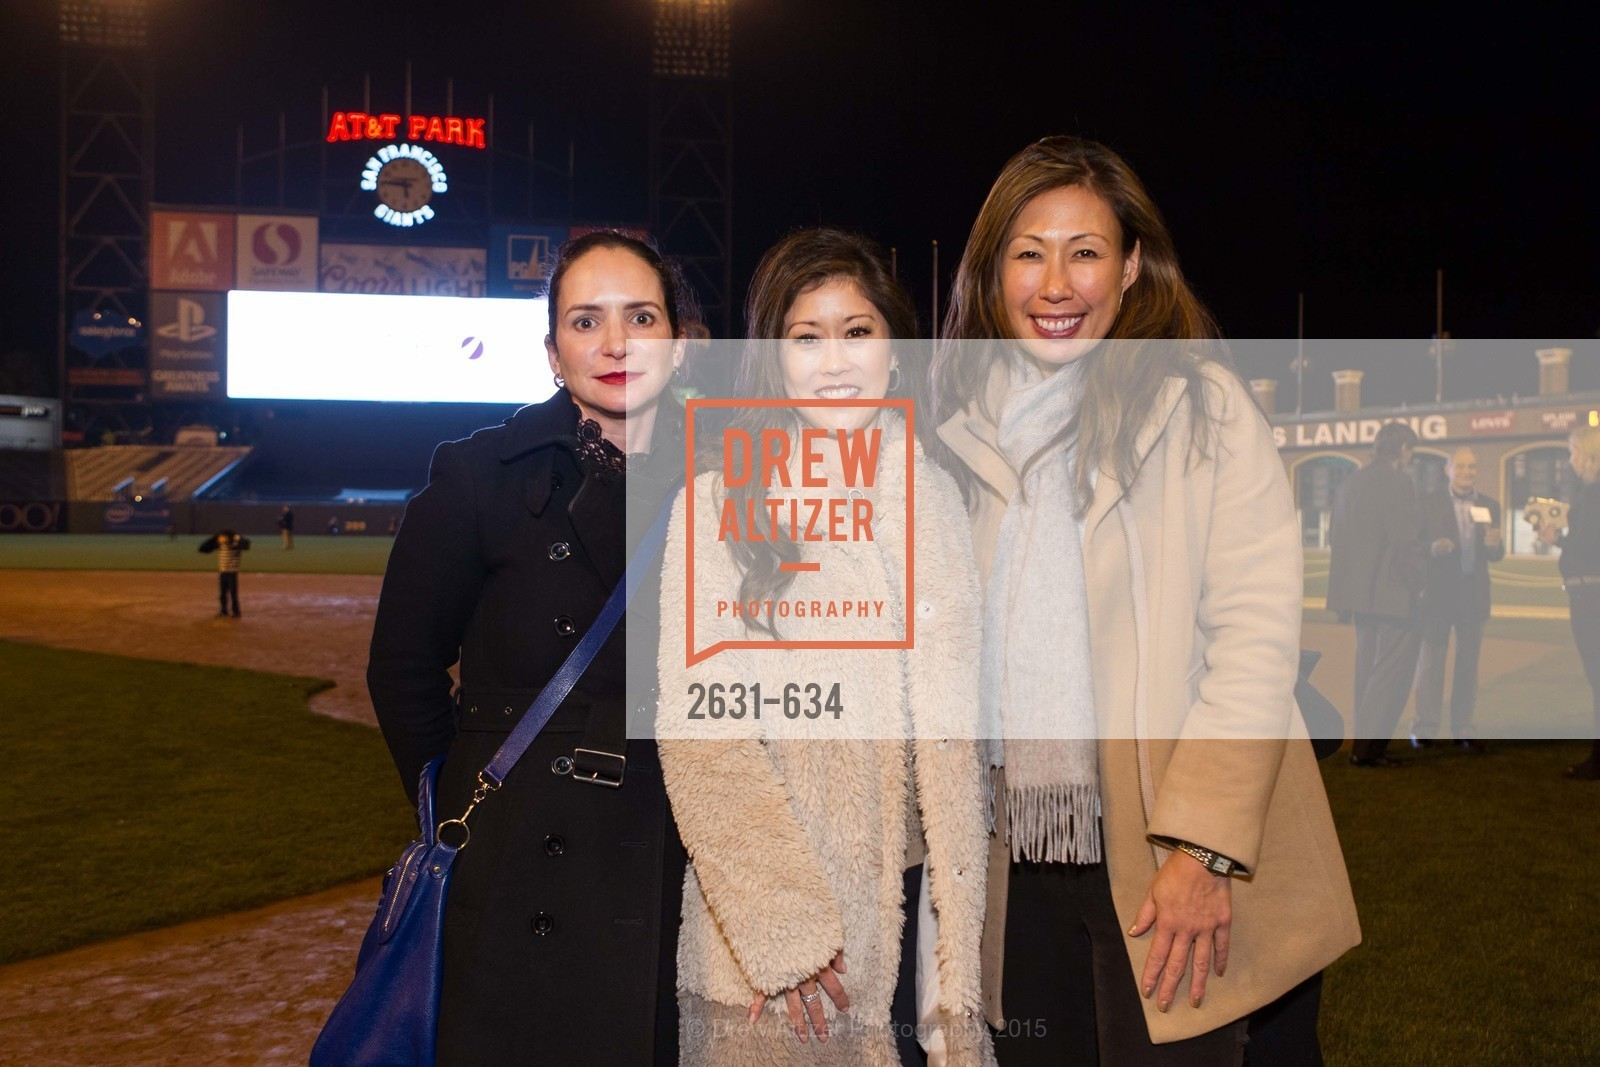 Courtney Dallaire, Kristi Yamaguchi, Joy Boatwright, Holiday Heroes 2015, AT&T Park, December 7th, 2015,Drew Altizer, Drew Altizer Photography, full-service agency, private events, San Francisco photographer, photographer california